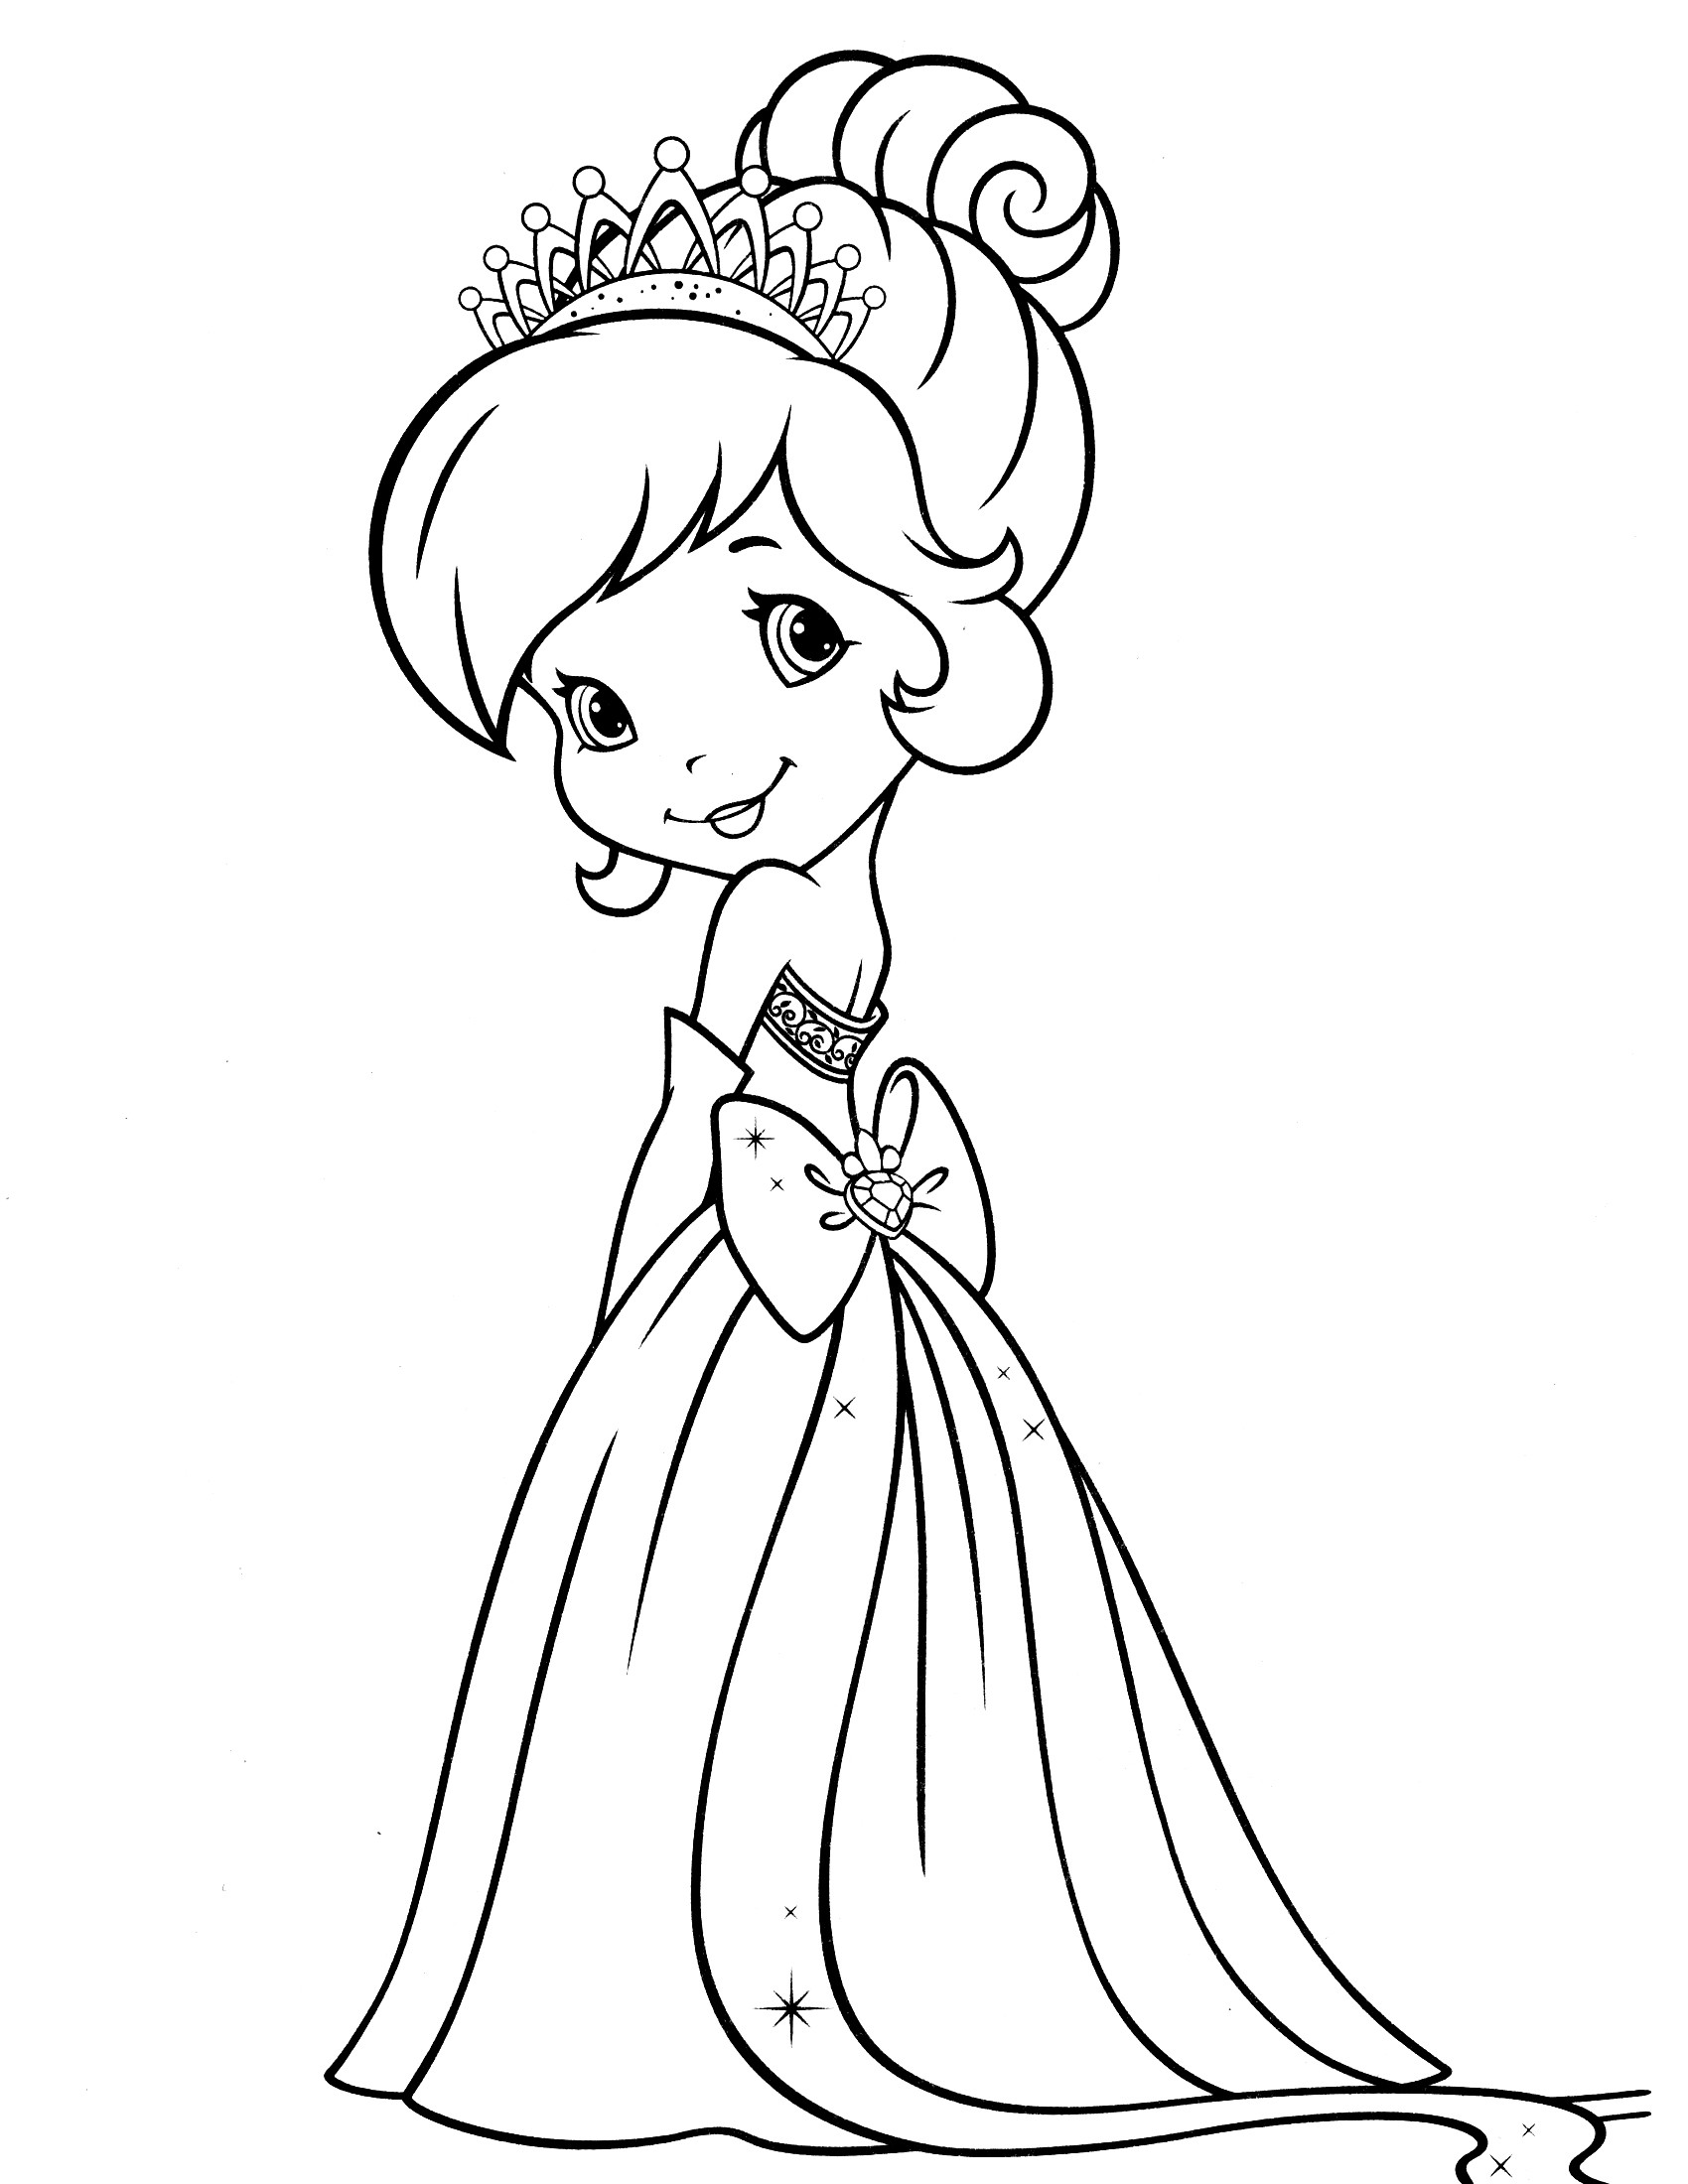 Coloring Sheets For Girls Strawberry Shortcake  Strawberry Shortcake Coloring Pages Strawberry Shortcake